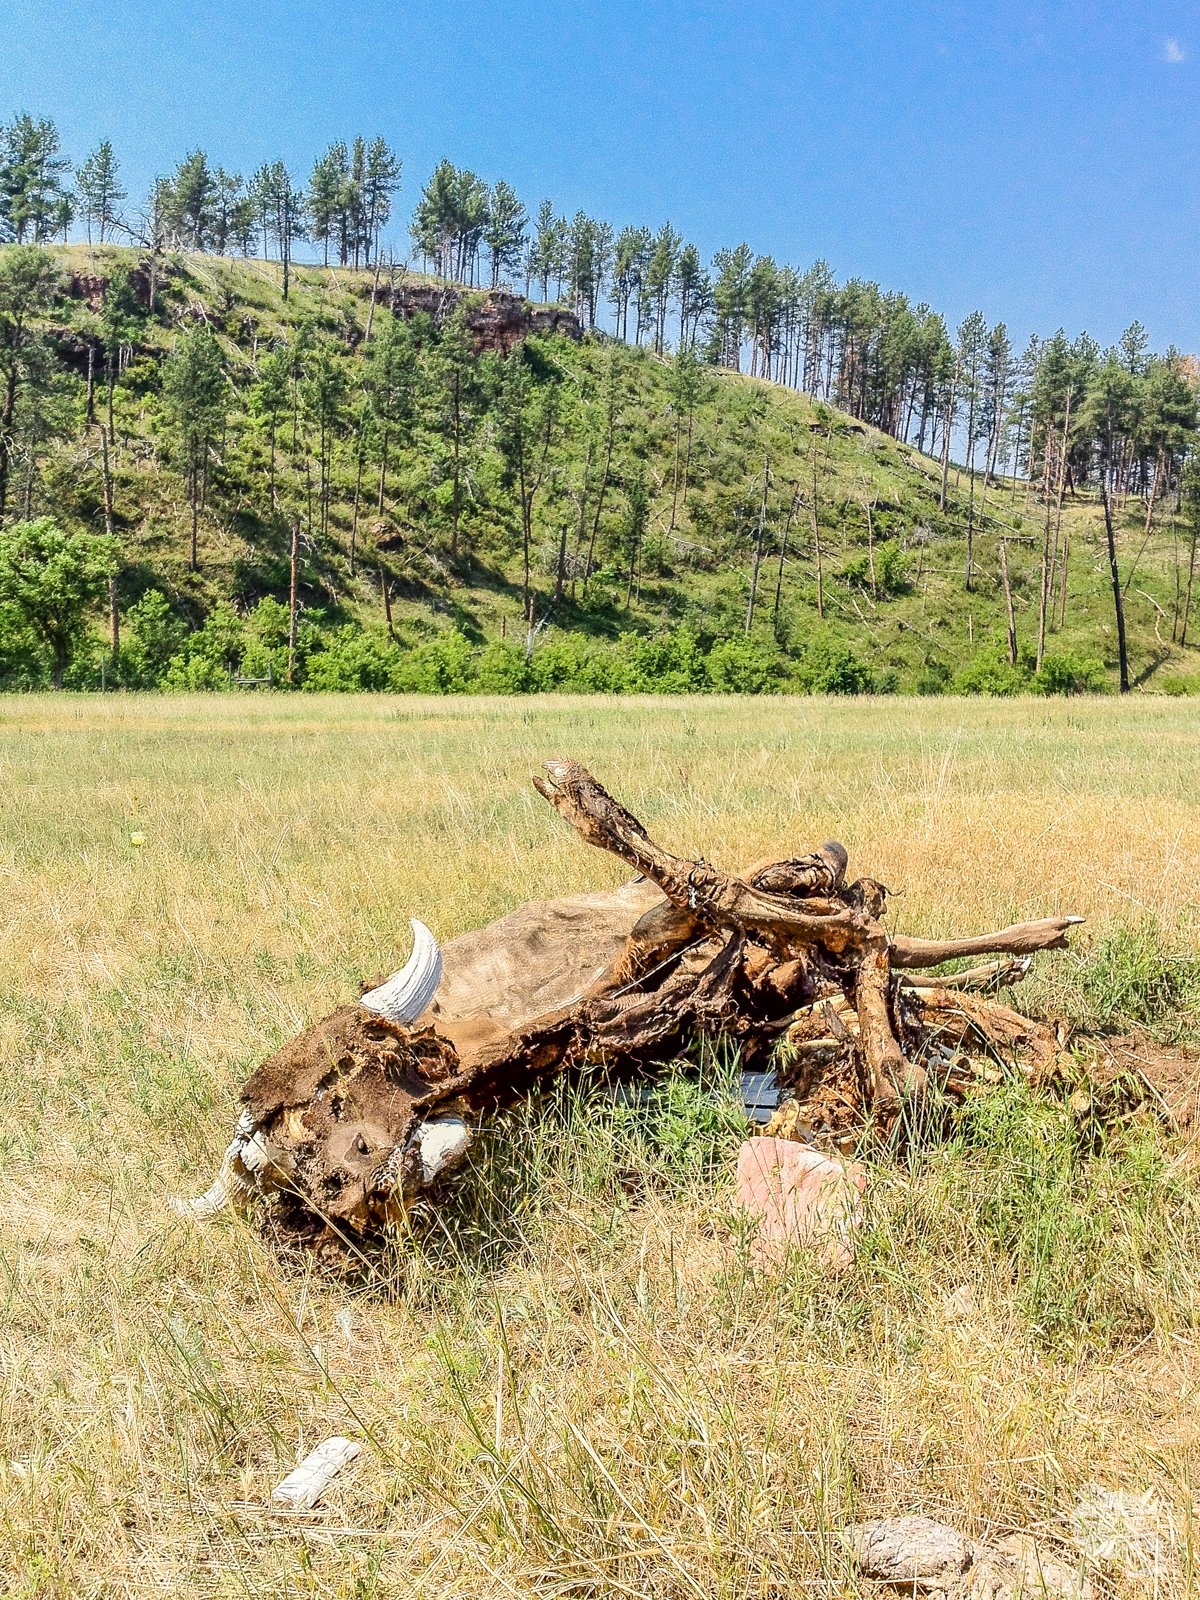 A bison carcass along the Lookout Point Trail.